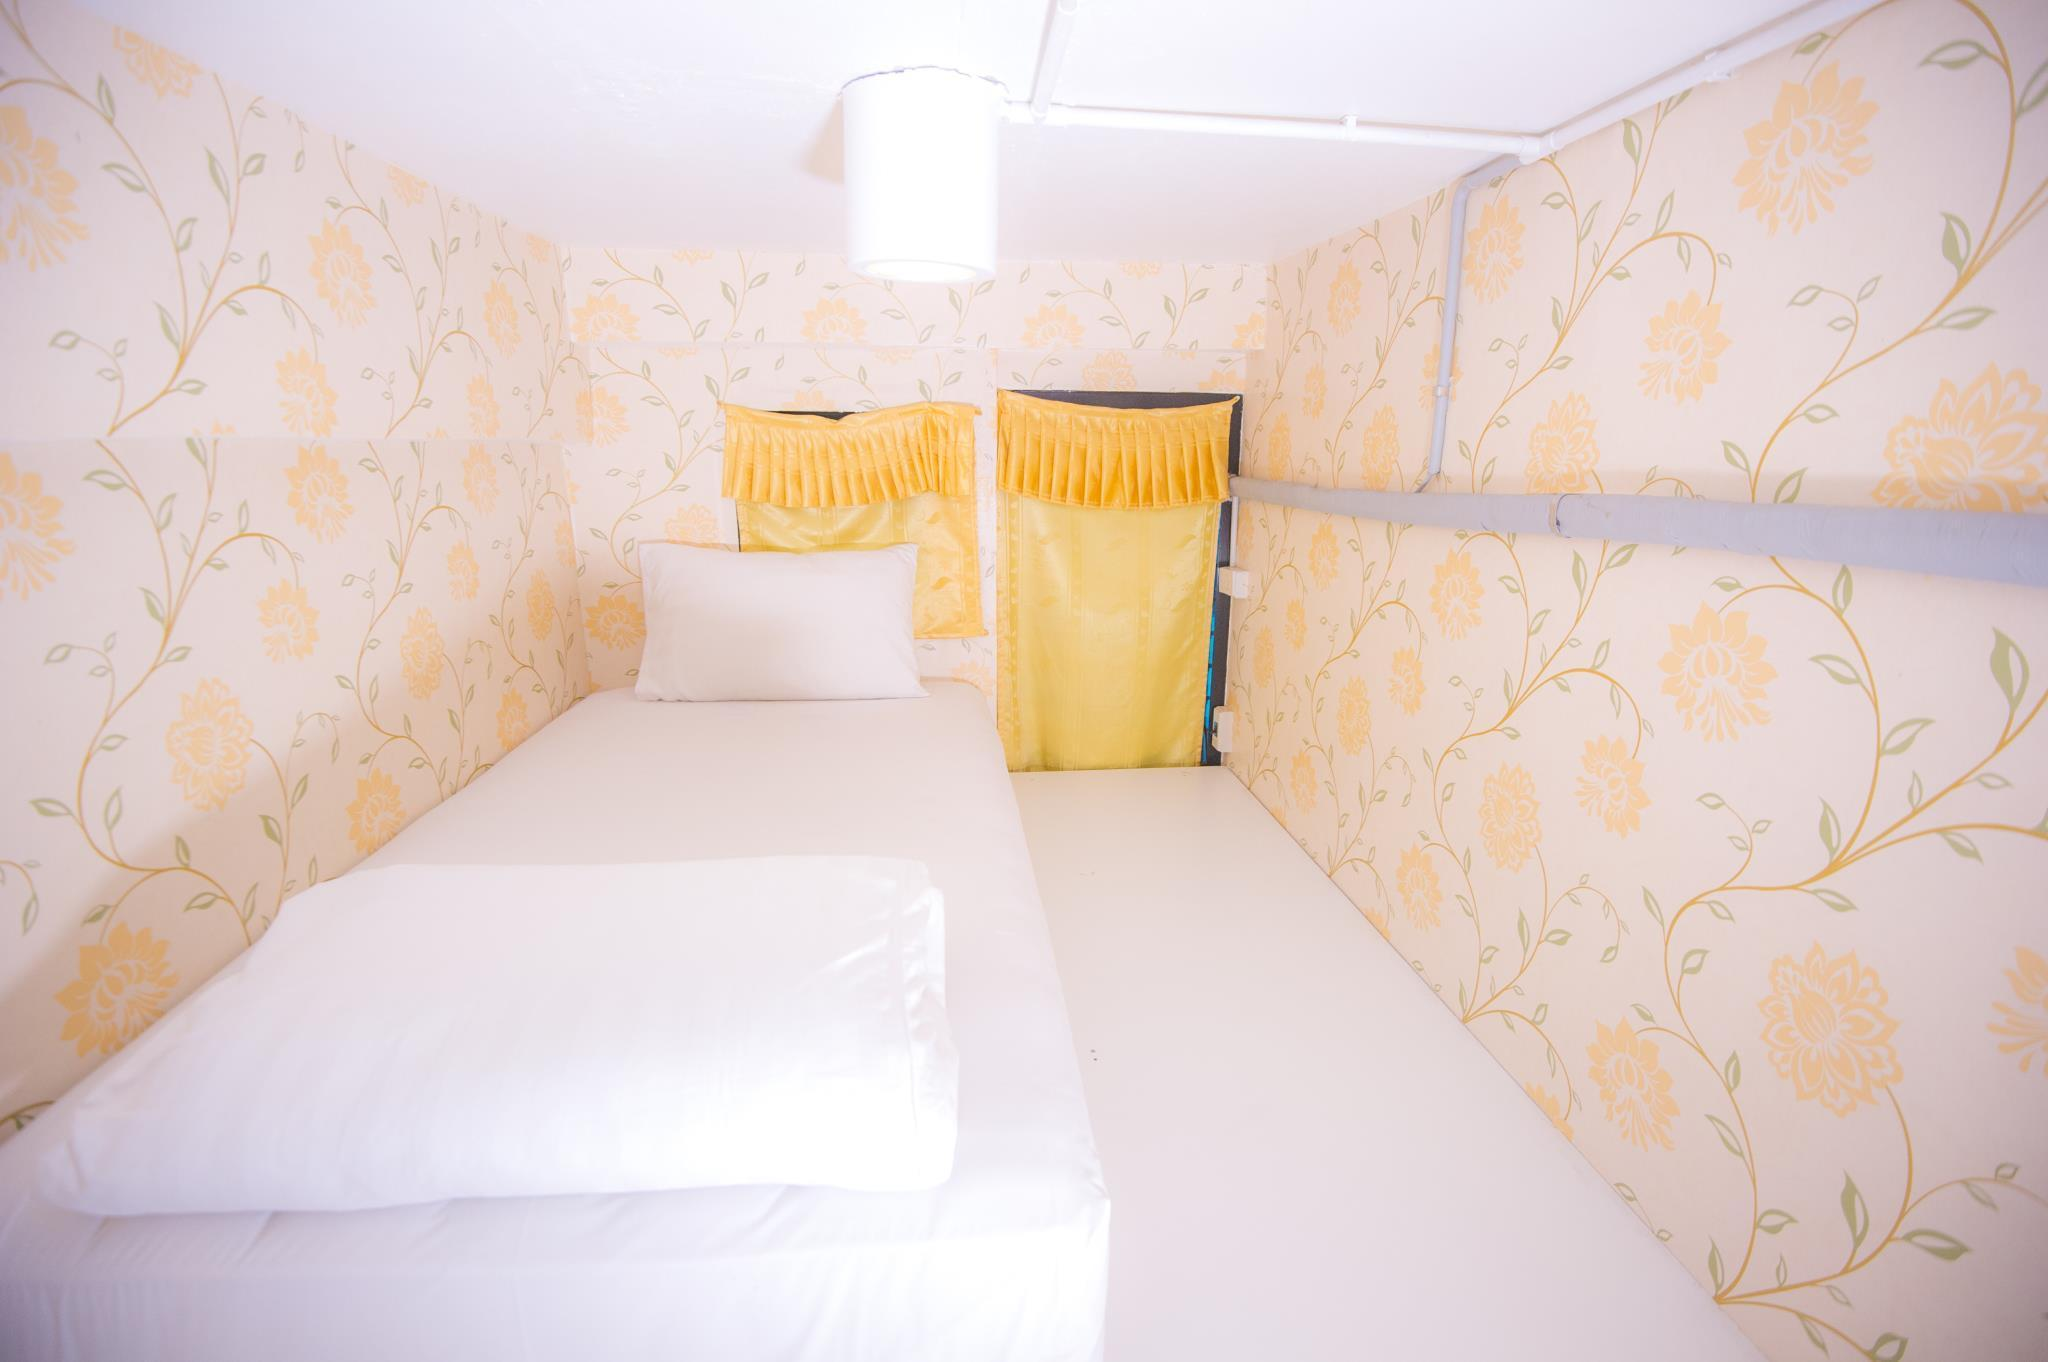 Privada con litera (Private Bunk)